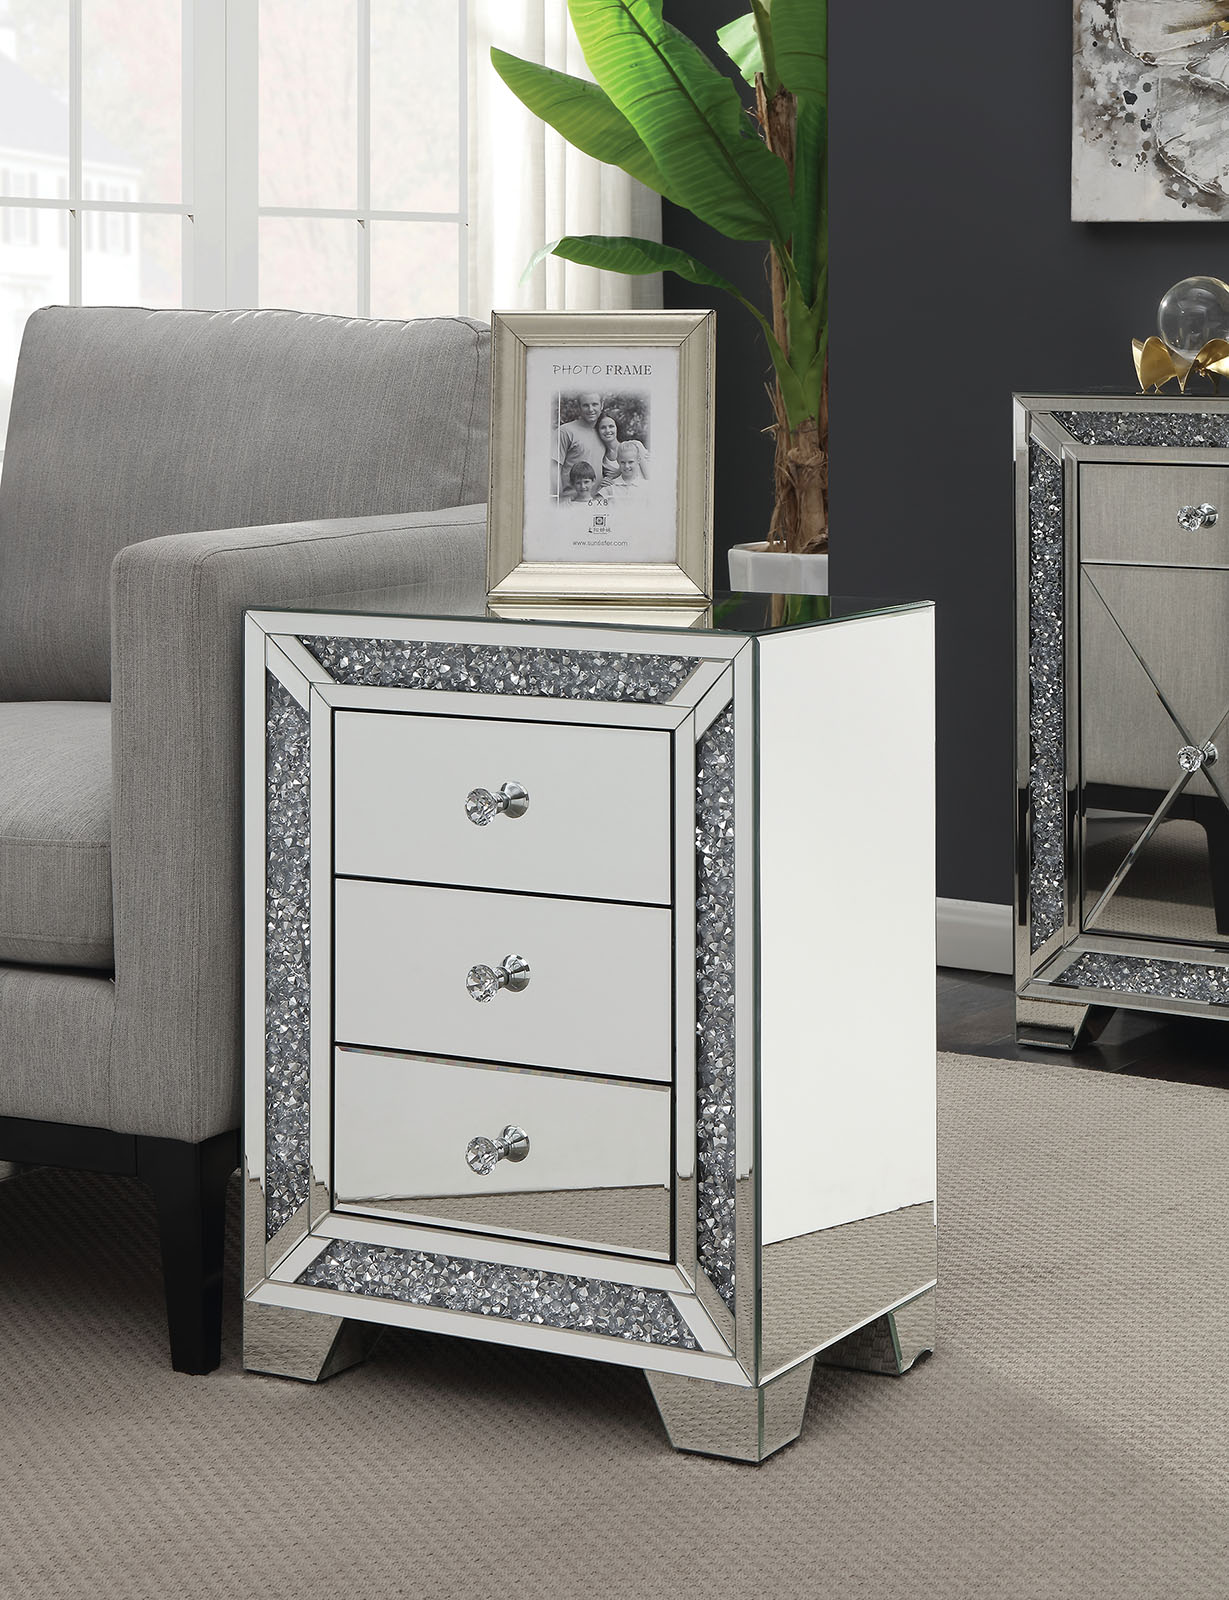 dritan mirror accent drawer end side table three turn your living bedroom into contemporary art gallery with this the staggered layers lustrous silver glass make for dazzling